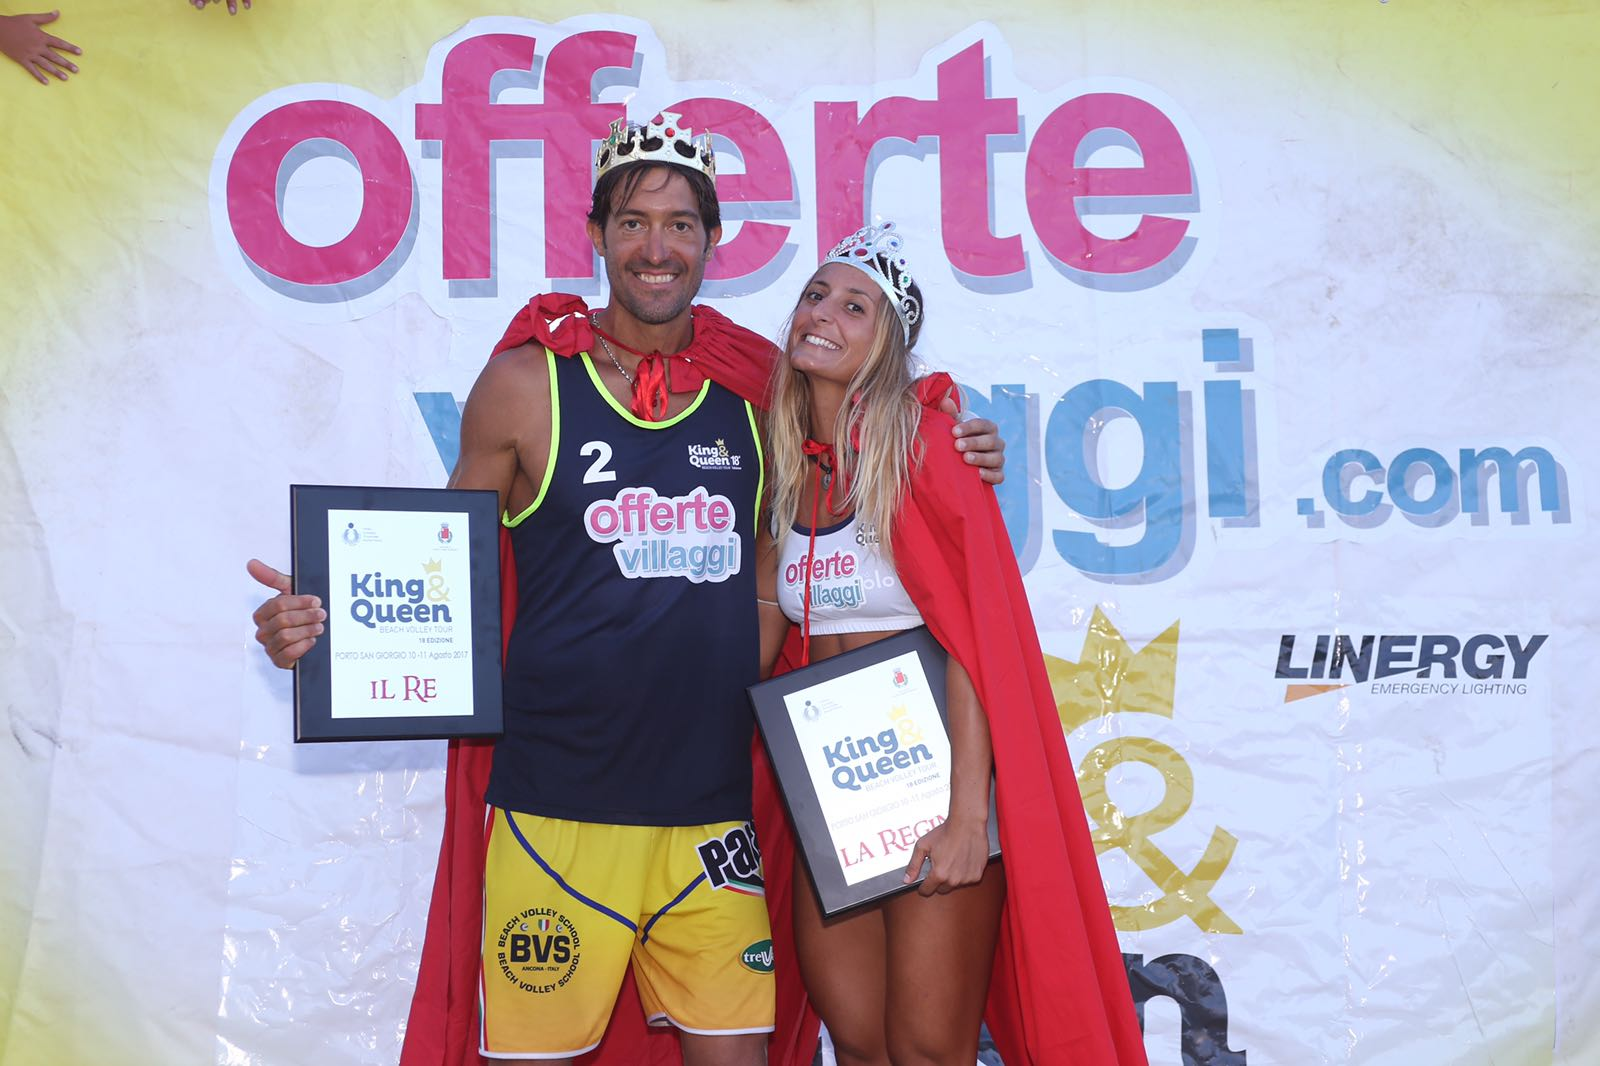 Paolo Ficosecco e Silvia Leonardi sono il King e Queen of the beach 2017